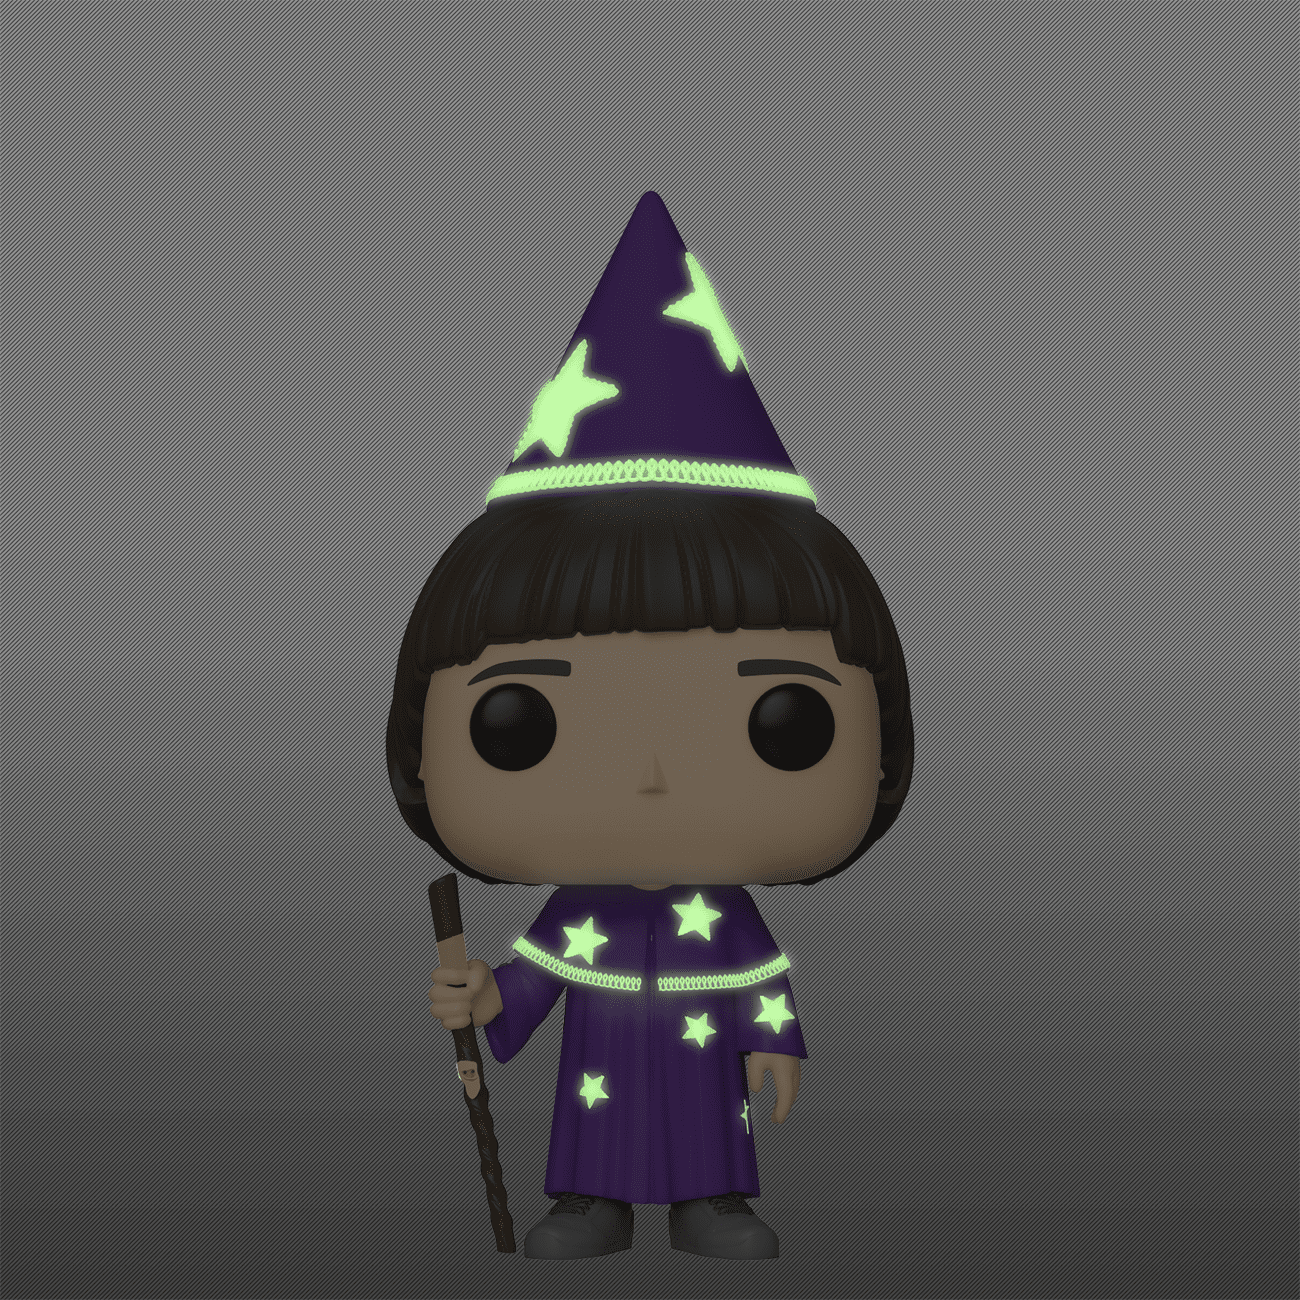 Funko Pop! Will the Wise (Glow in the Dark) (Stranger Things)